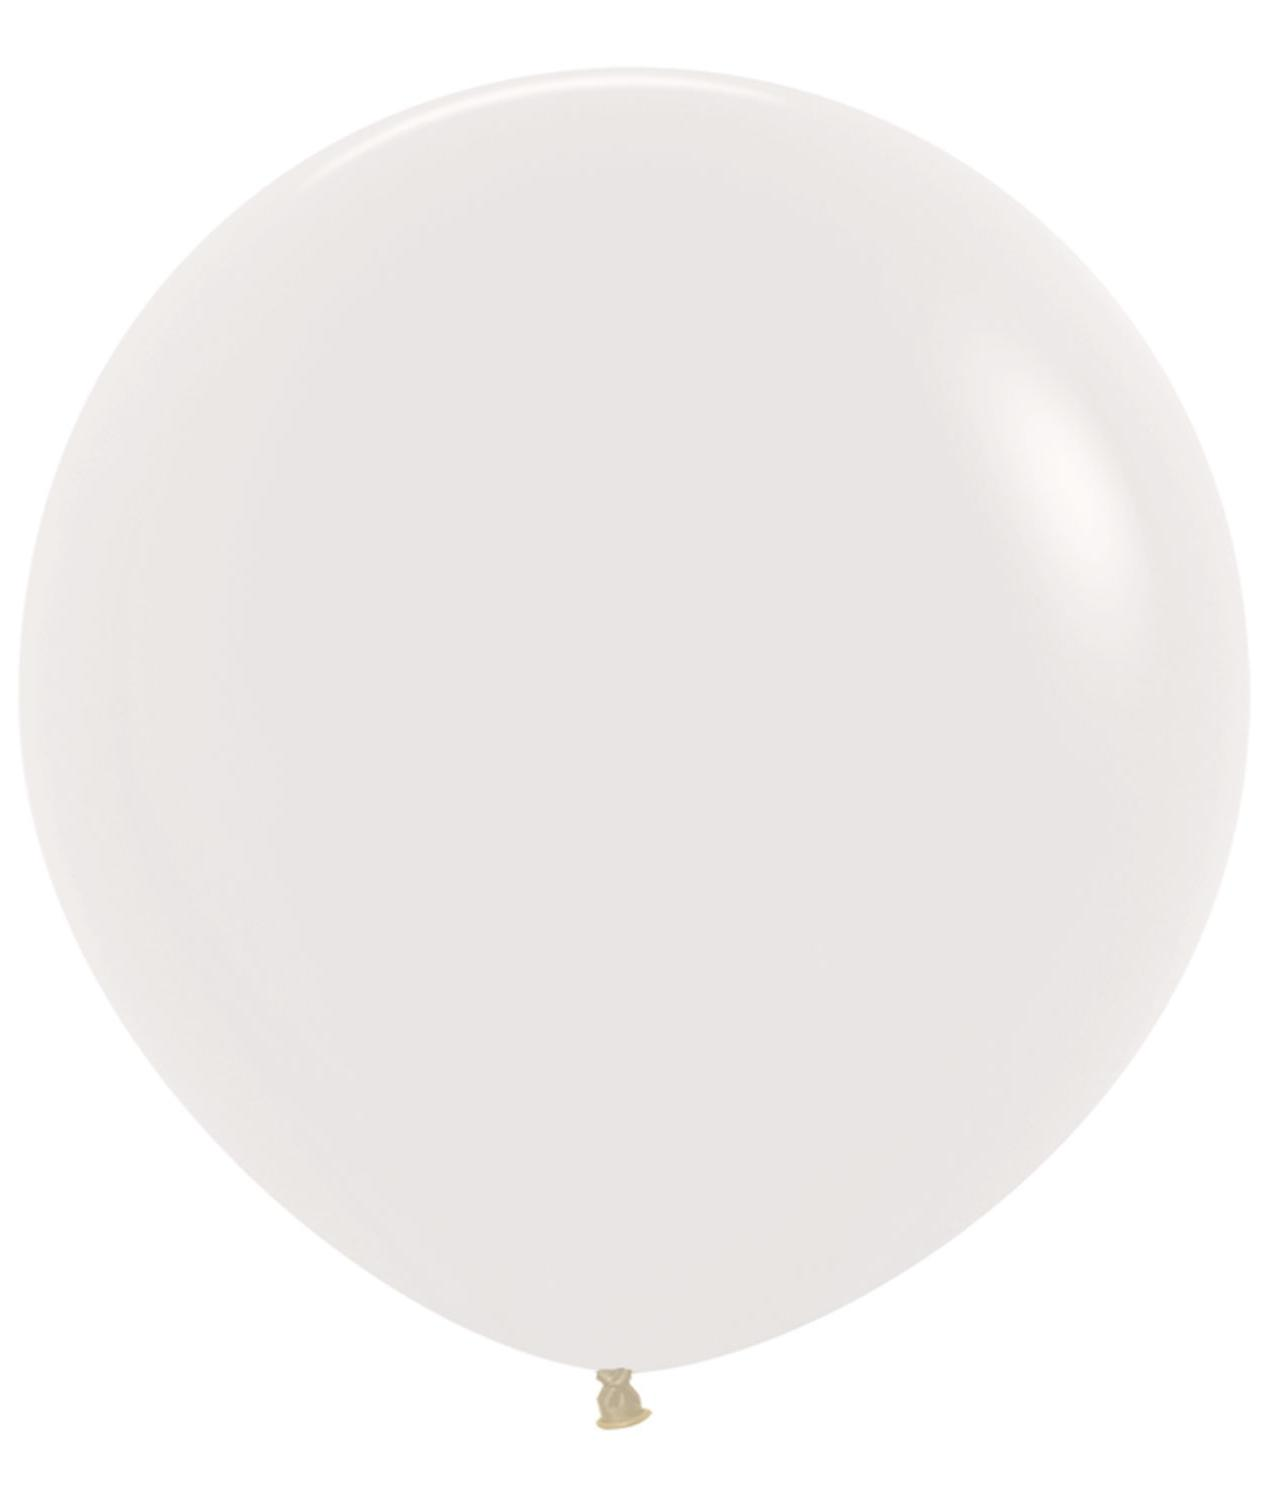 Large Latex Balloon Solid Crystal Clear